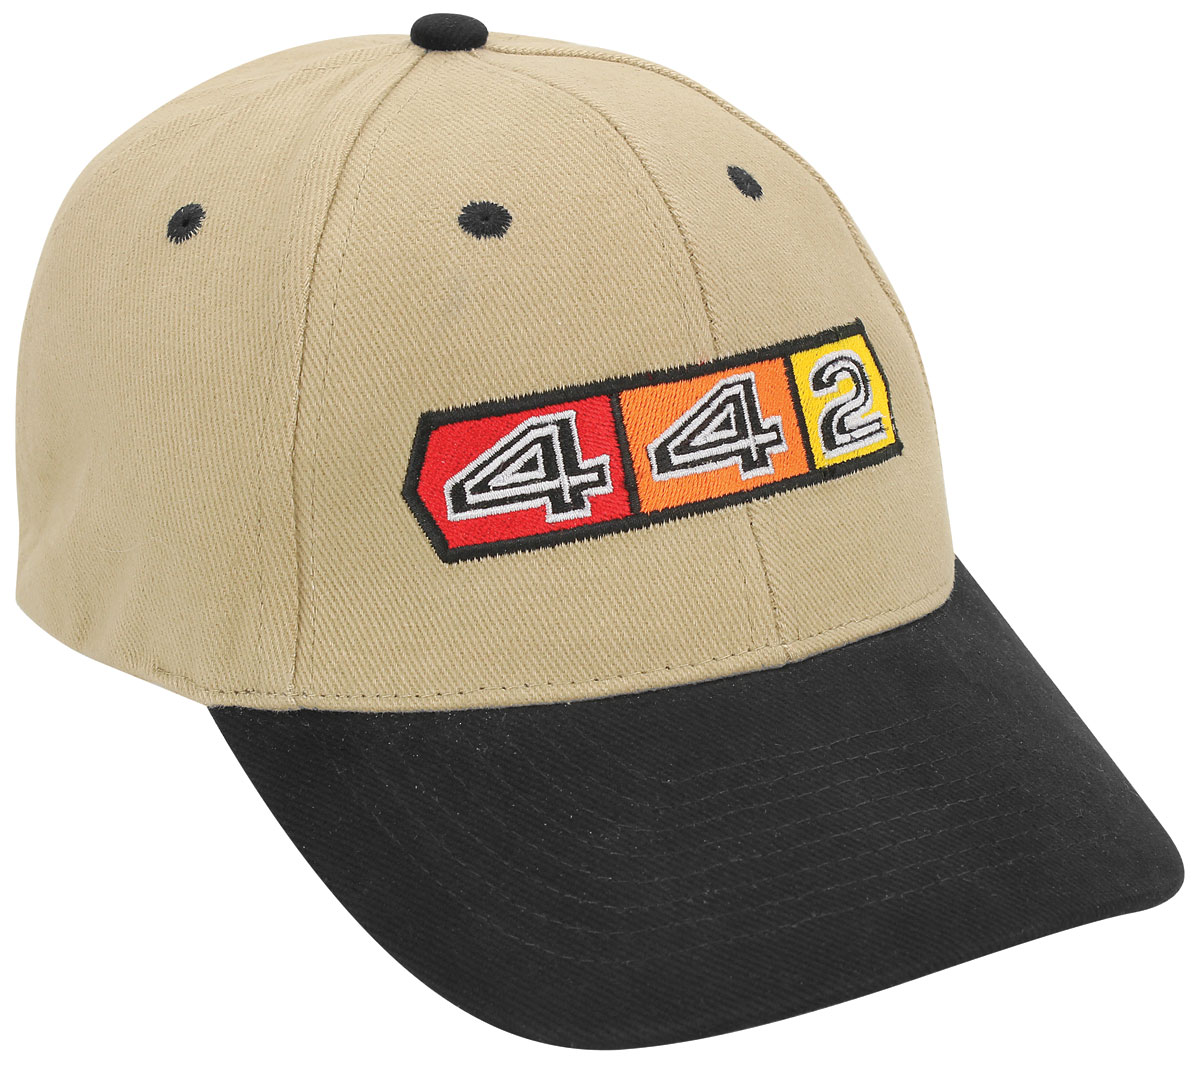 oldsmobile custom embroidered hat 4 4 2 by hot rods plus